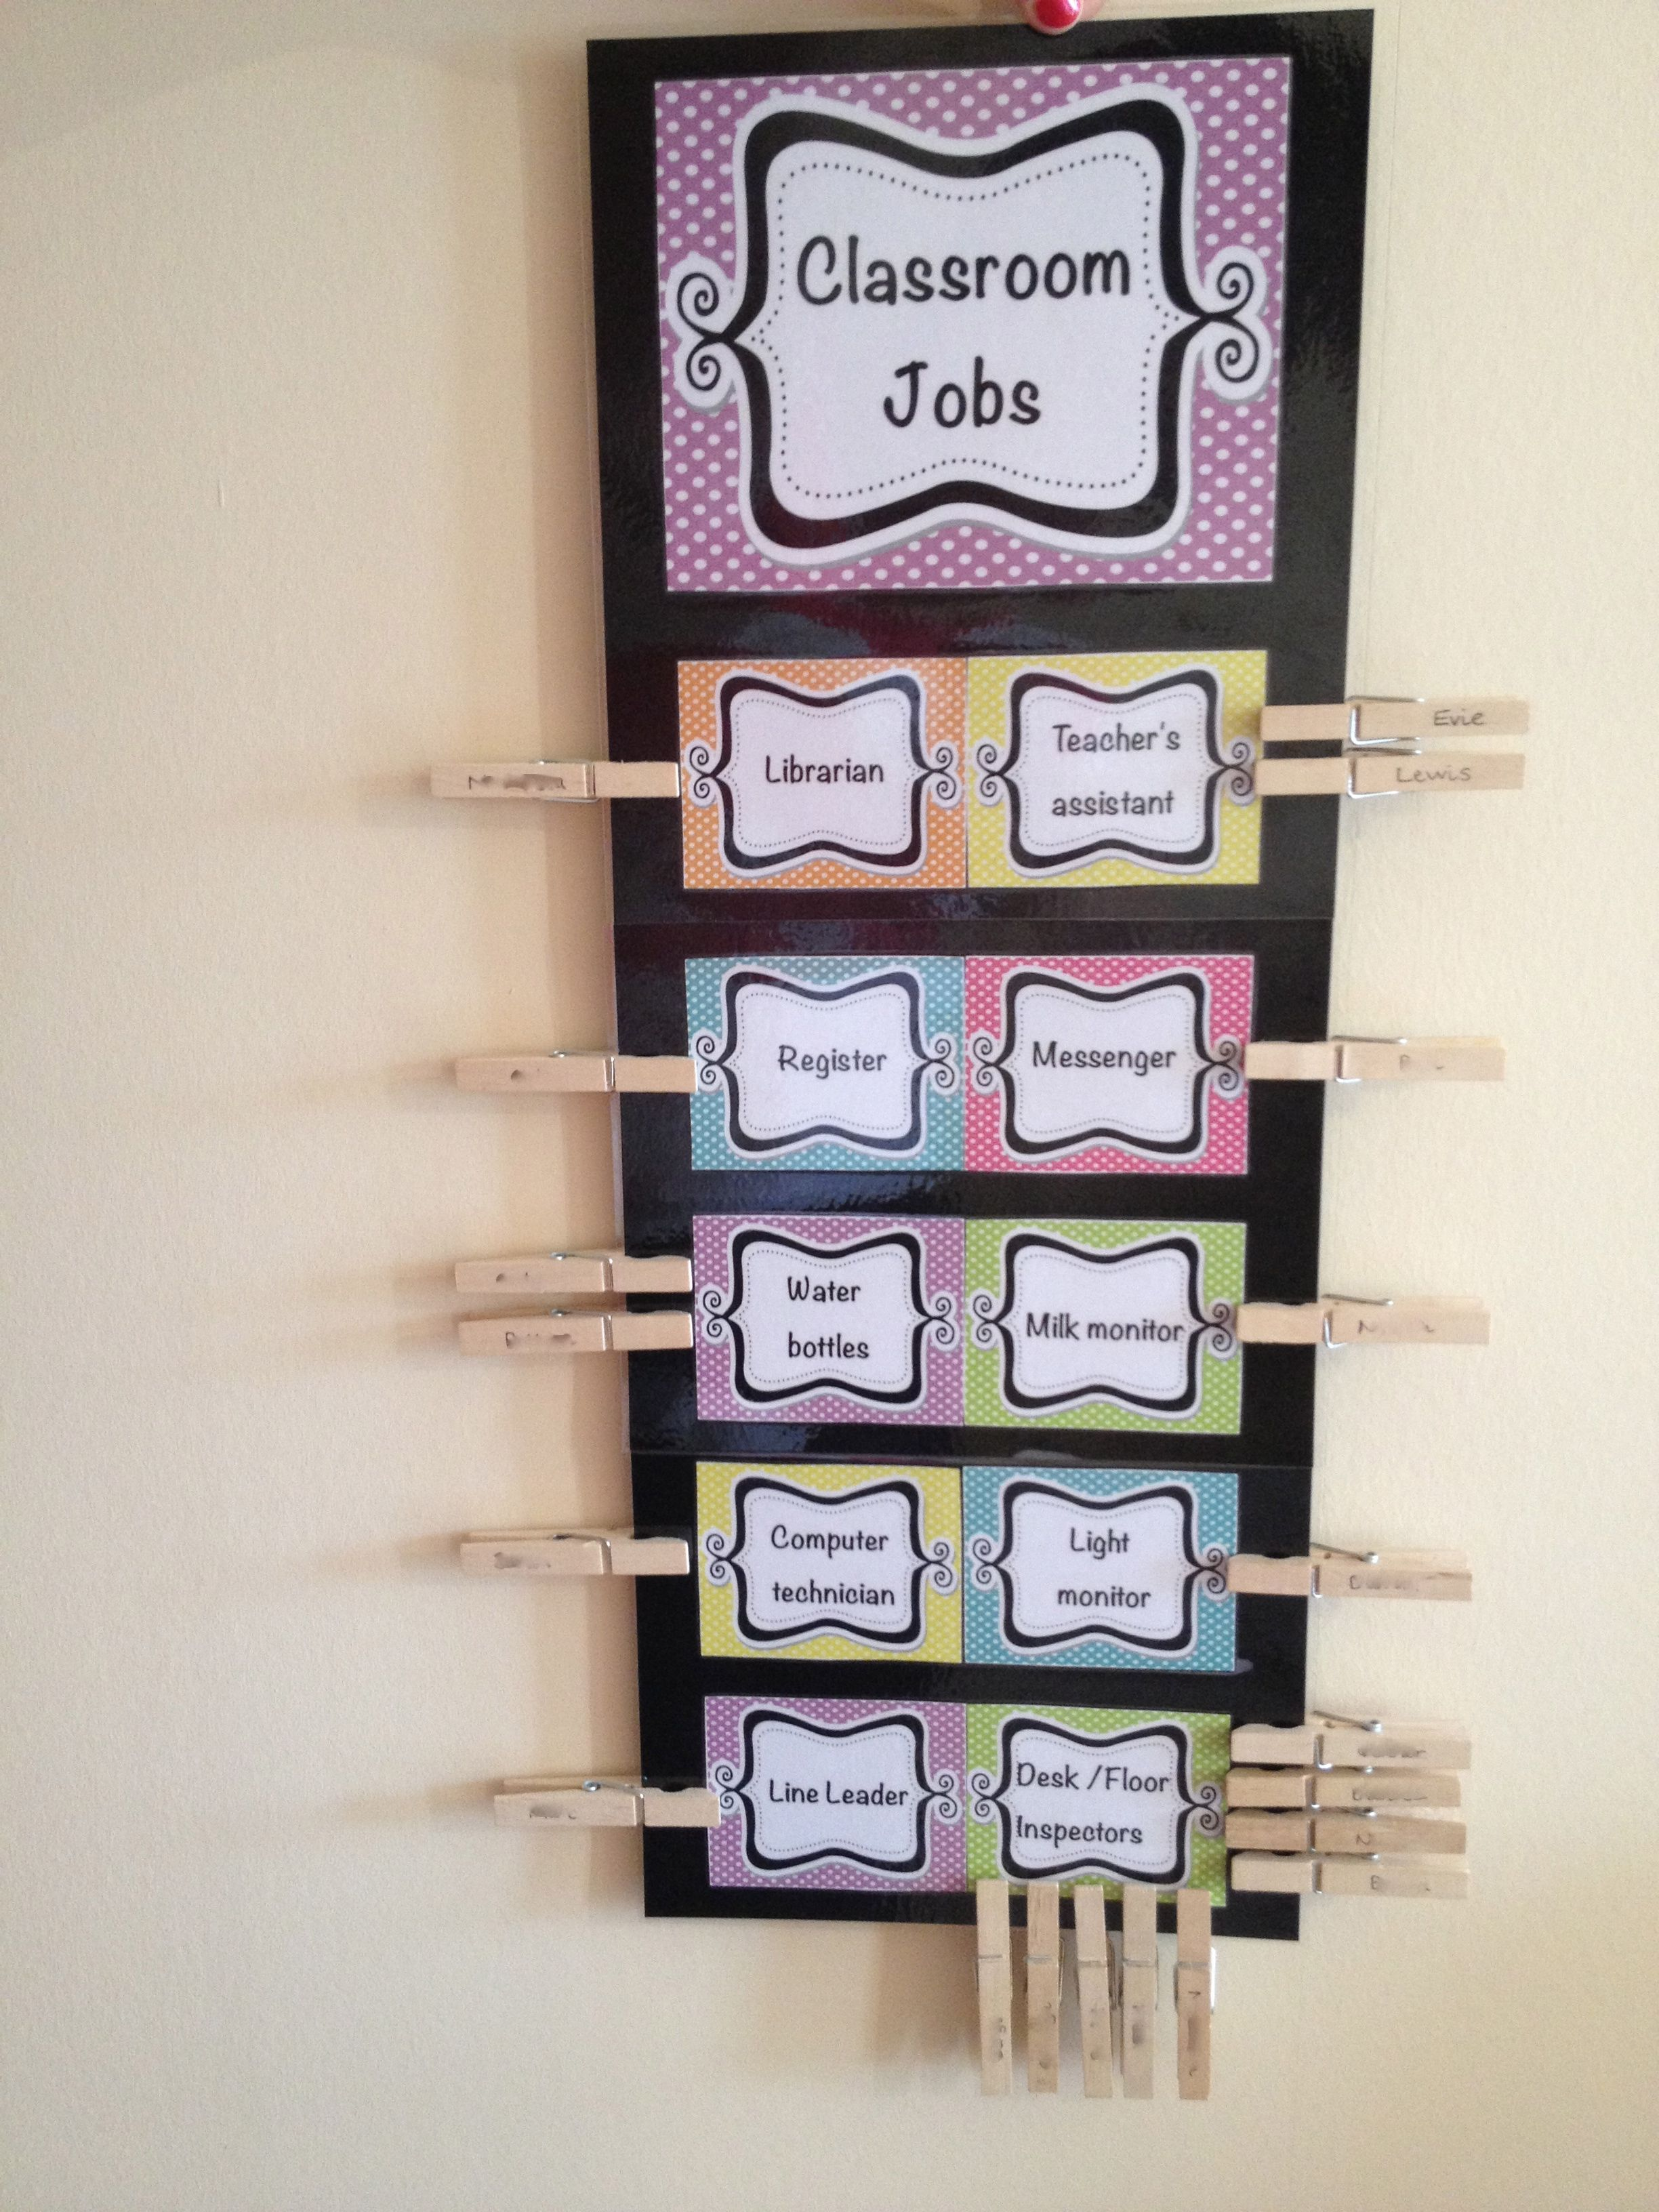 Classroom Job Ideas 3rd Grade : Class jobs chart with names on clothes pegs to move each